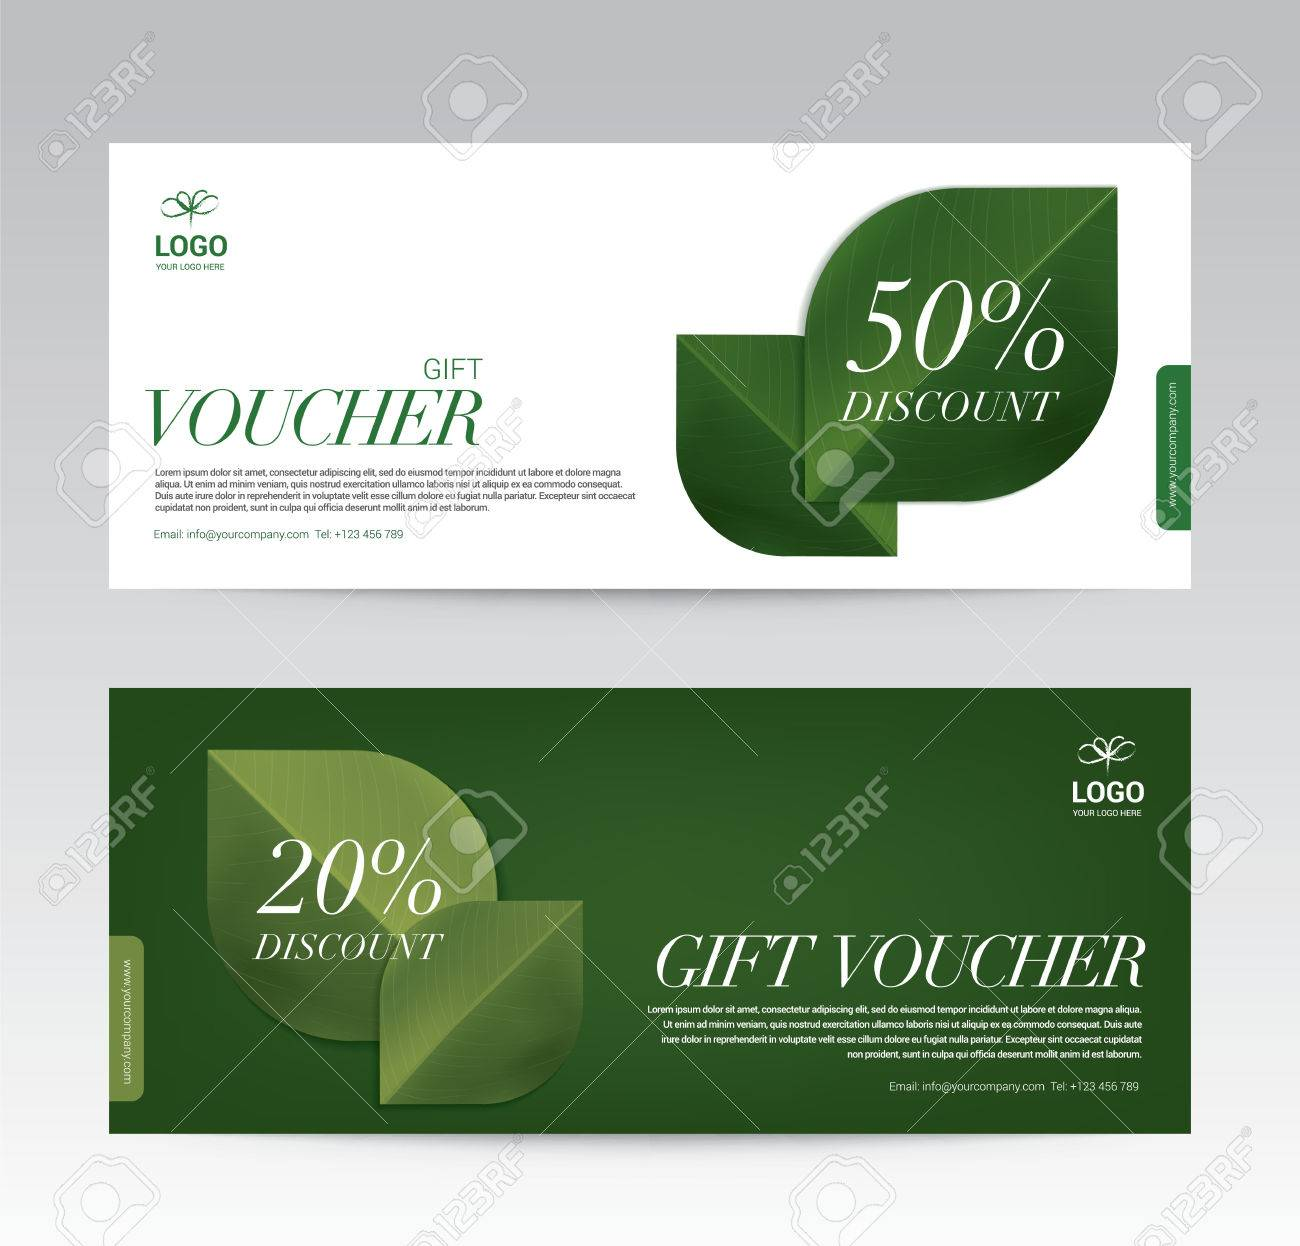 Gift voucher template for spa hotel resort illustration royalty gift voucher template for spa hotel resort illustration stock vector 71133818 1betcityfo Images